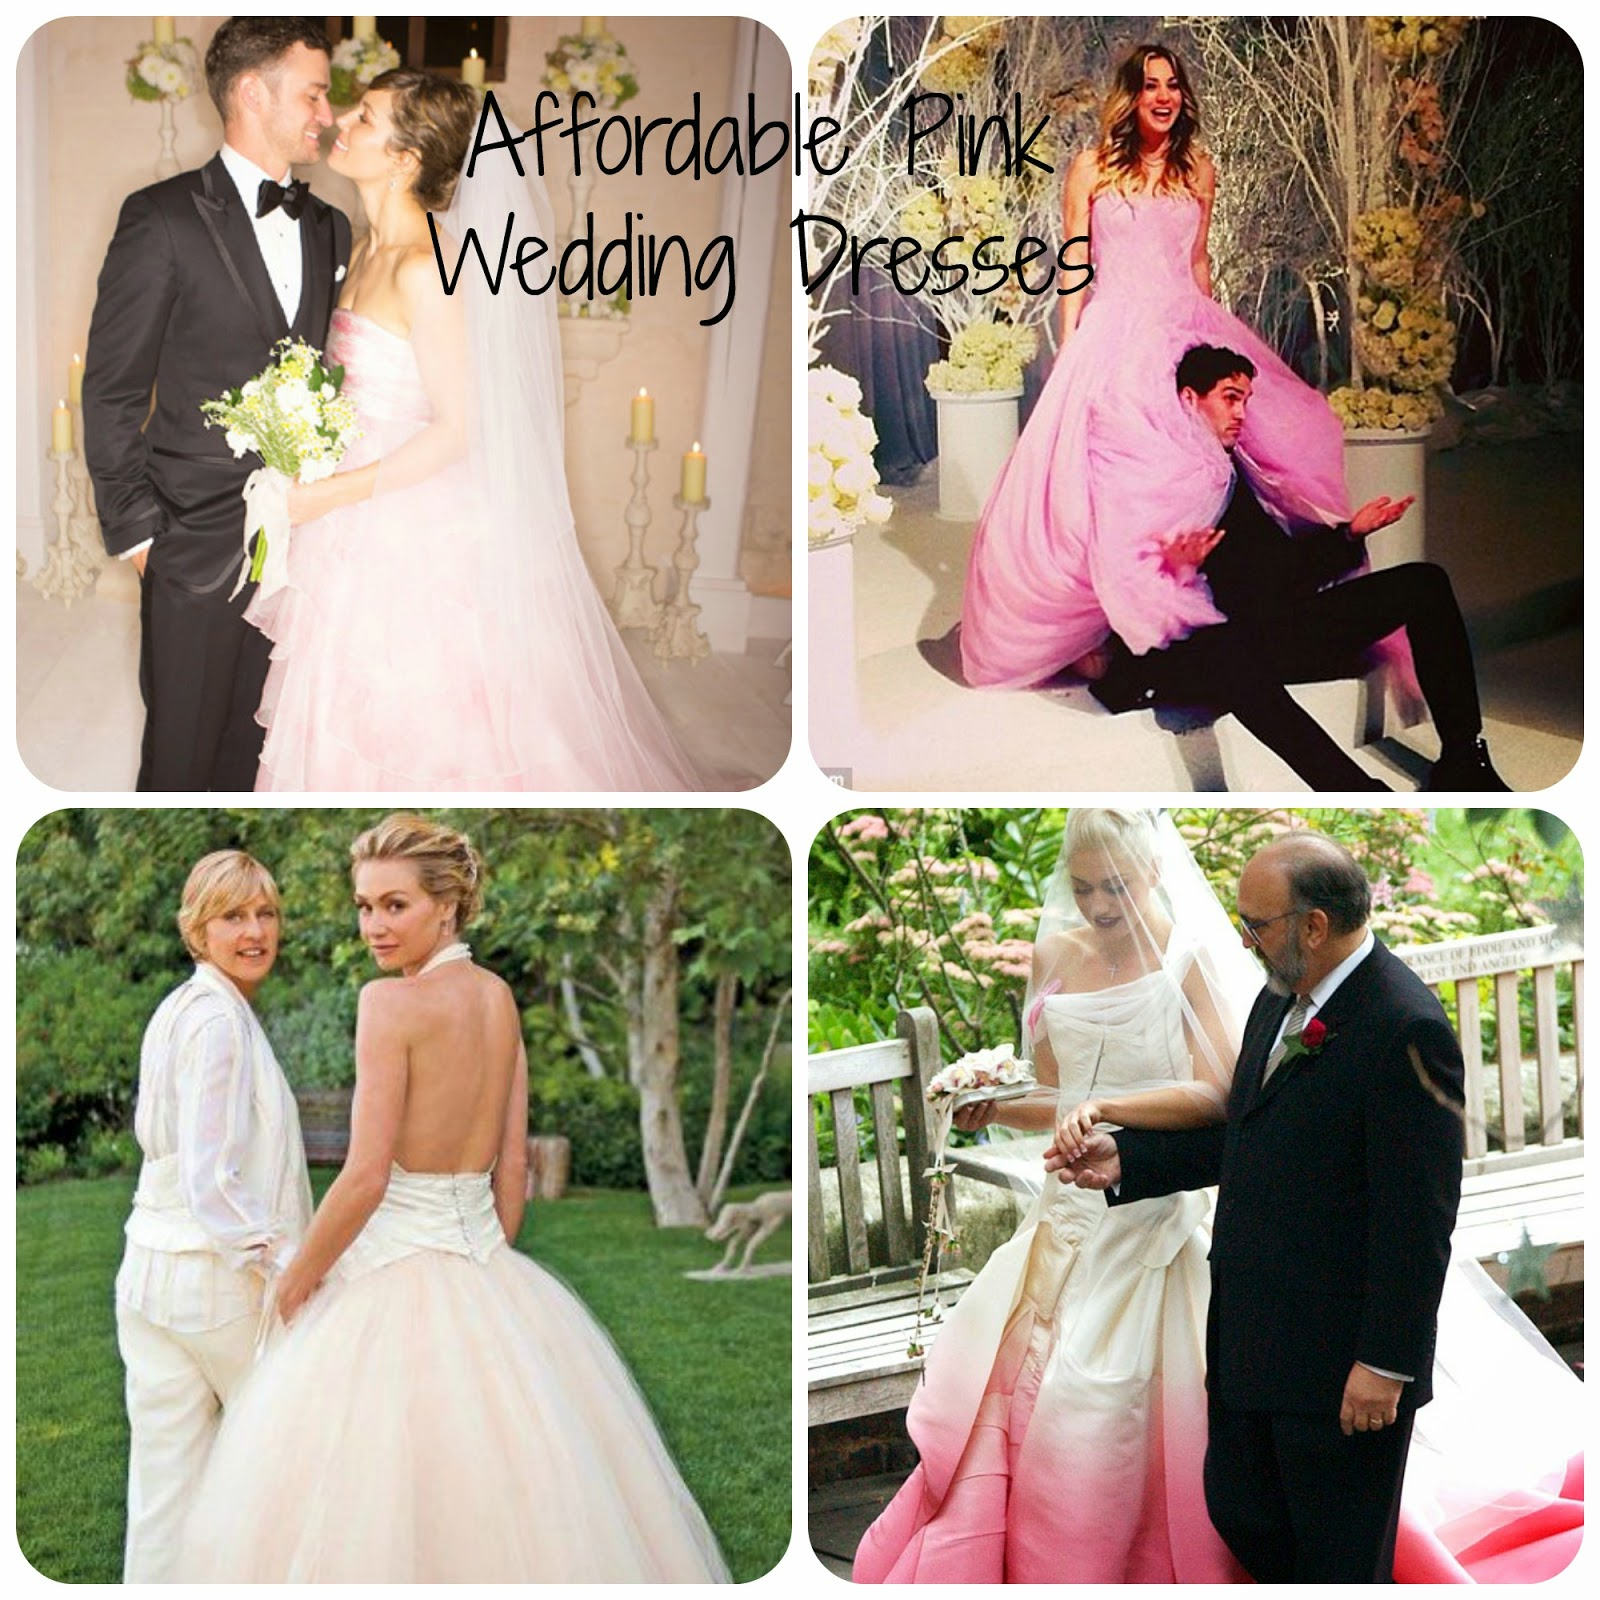 Affordable Pink Wedding Dresses - Celebrities